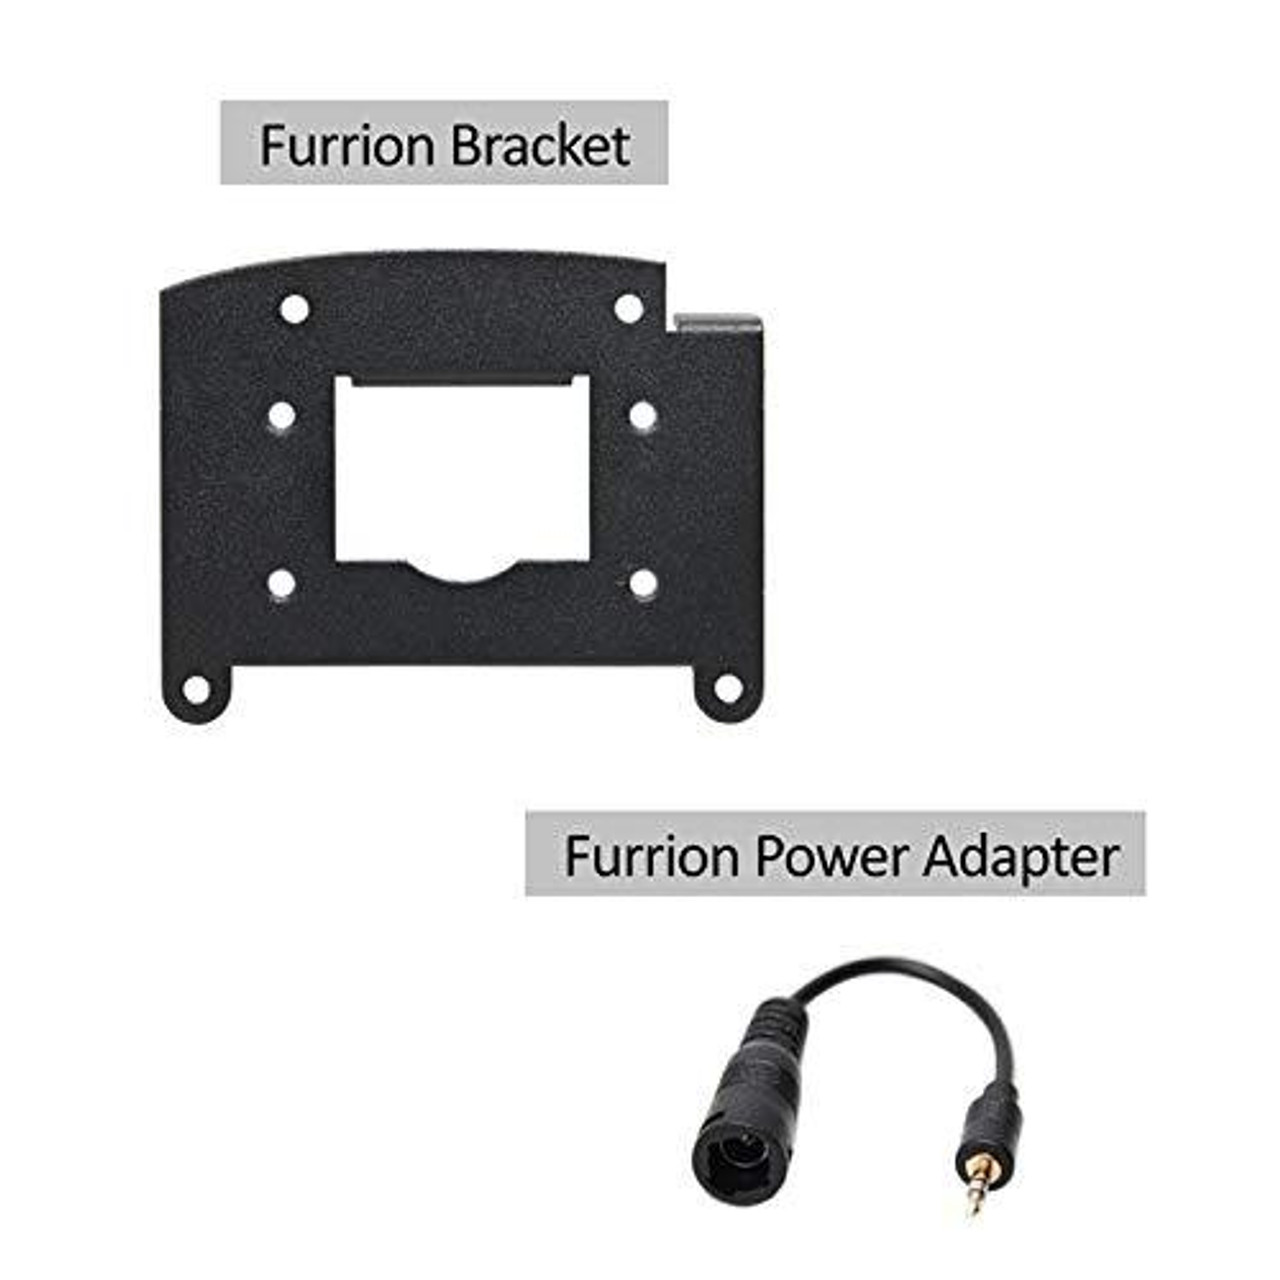 Furrion Prewire Bracket and Power Adapter